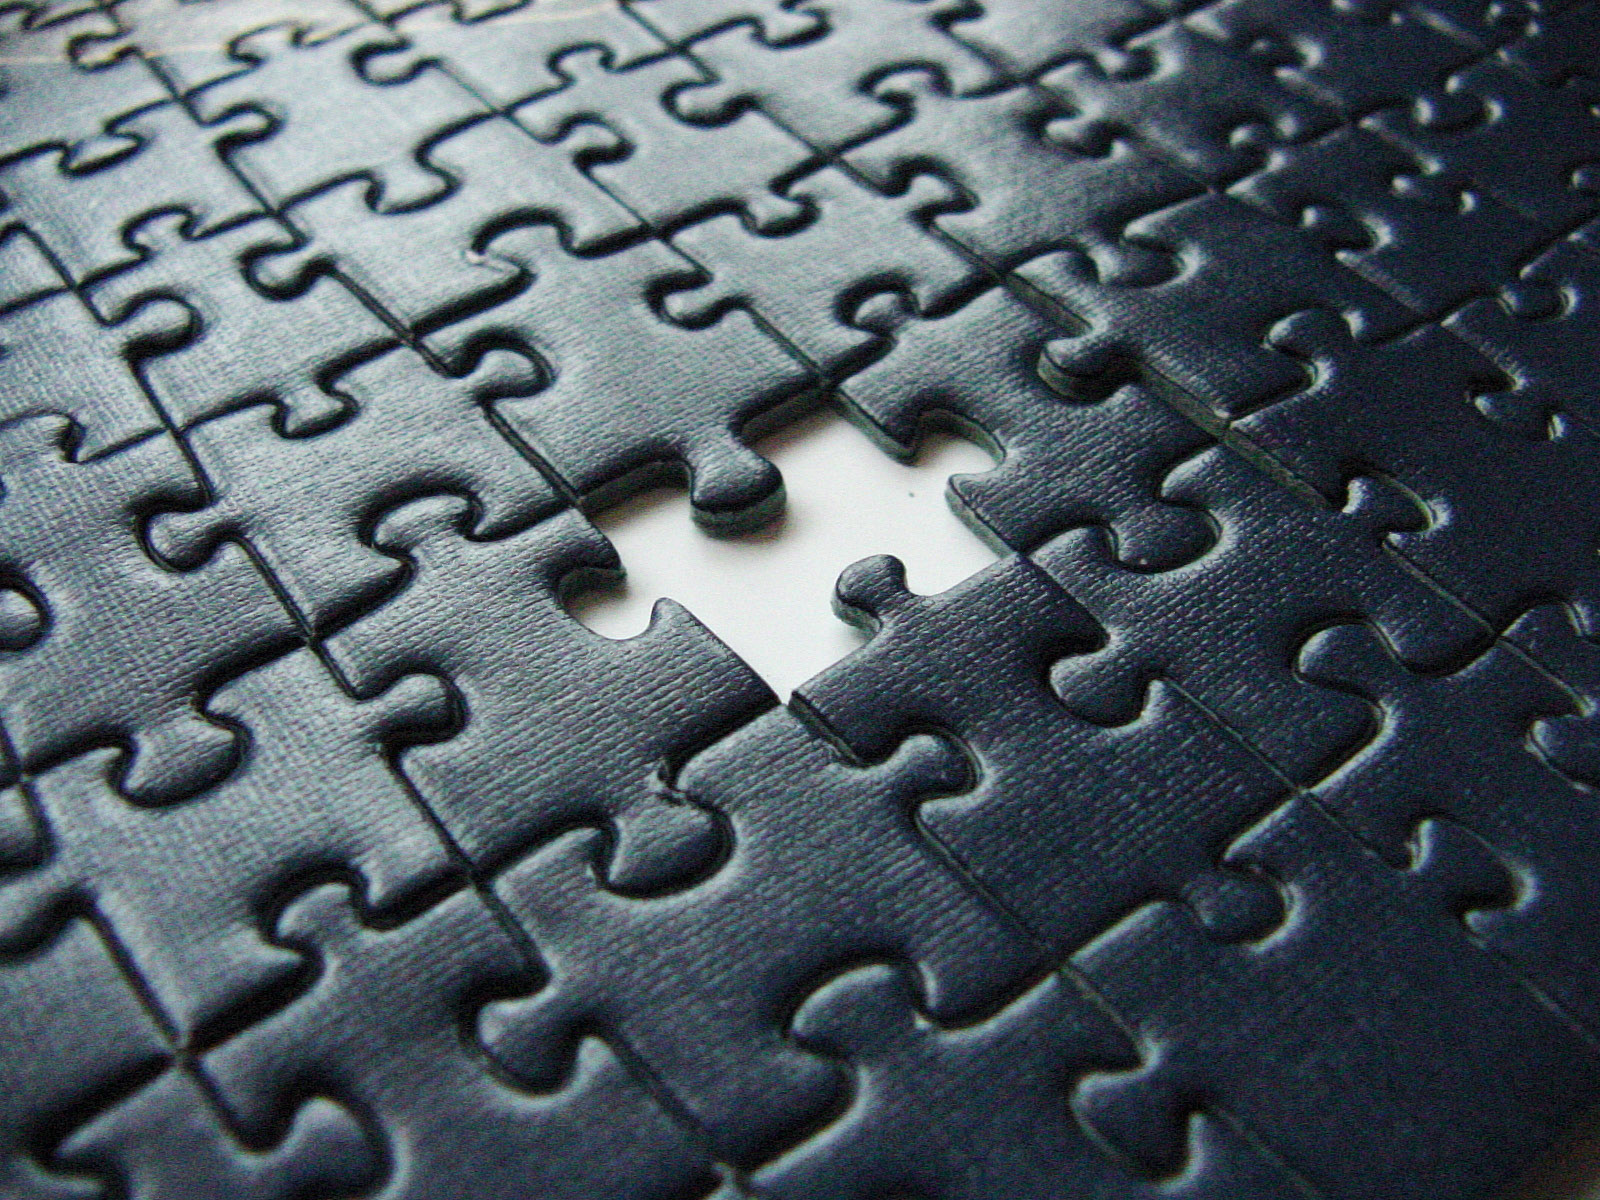 God – The Missing Piece of the Puzzle?